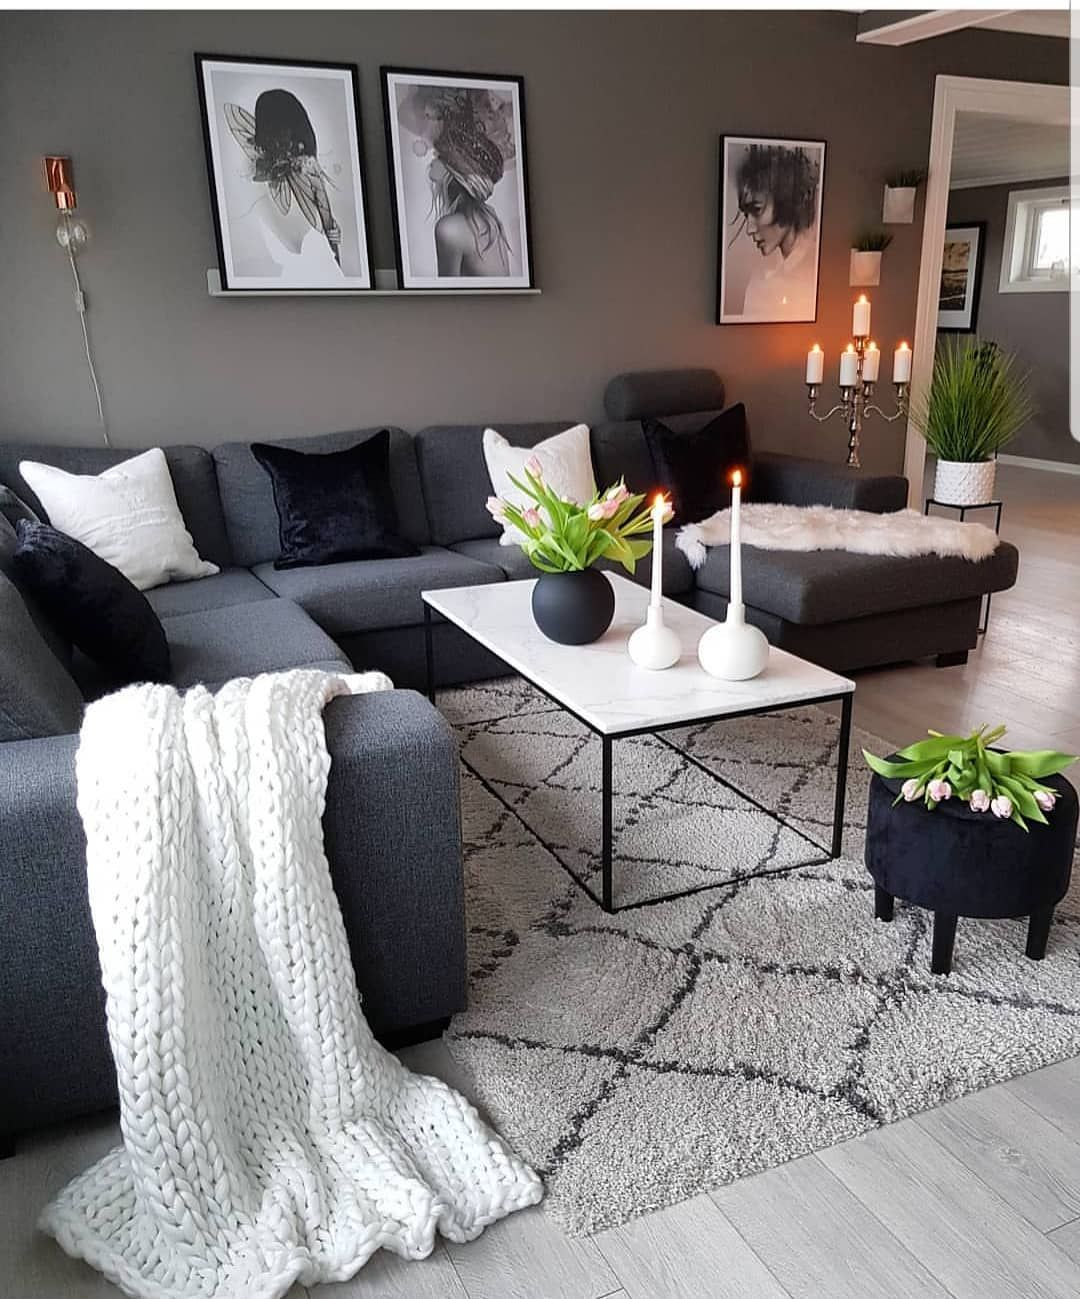 Guide To Find The Best Online Furniture Store In Town In 2021 Living Room Decor Gray Living Room Decor Apartment Home Living Room